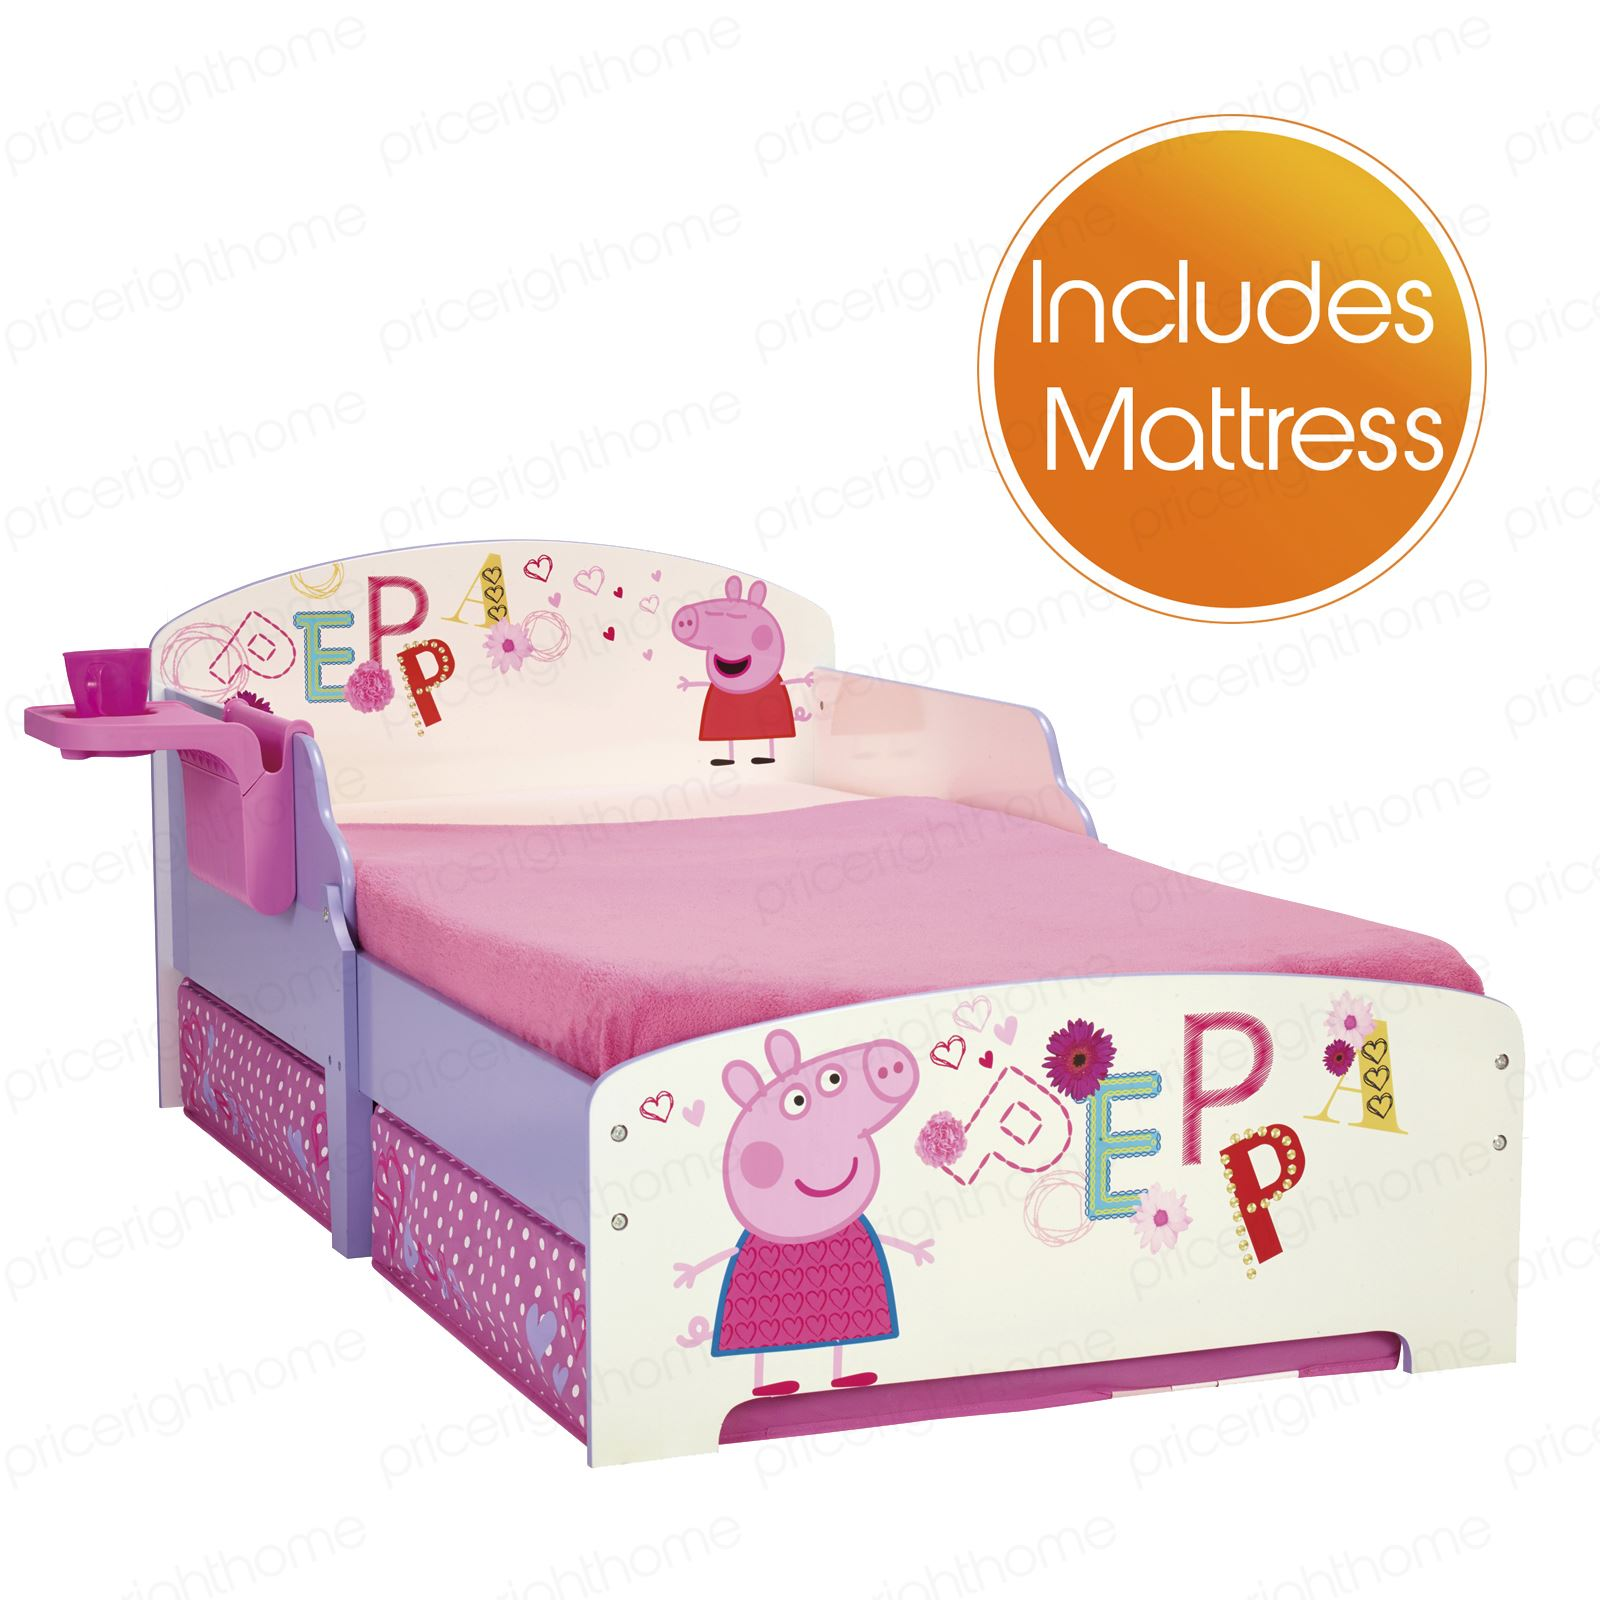 peppa pig mdf kleinkind bett mit regal aufbewahrung luxus matratzen neu ebay. Black Bedroom Furniture Sets. Home Design Ideas